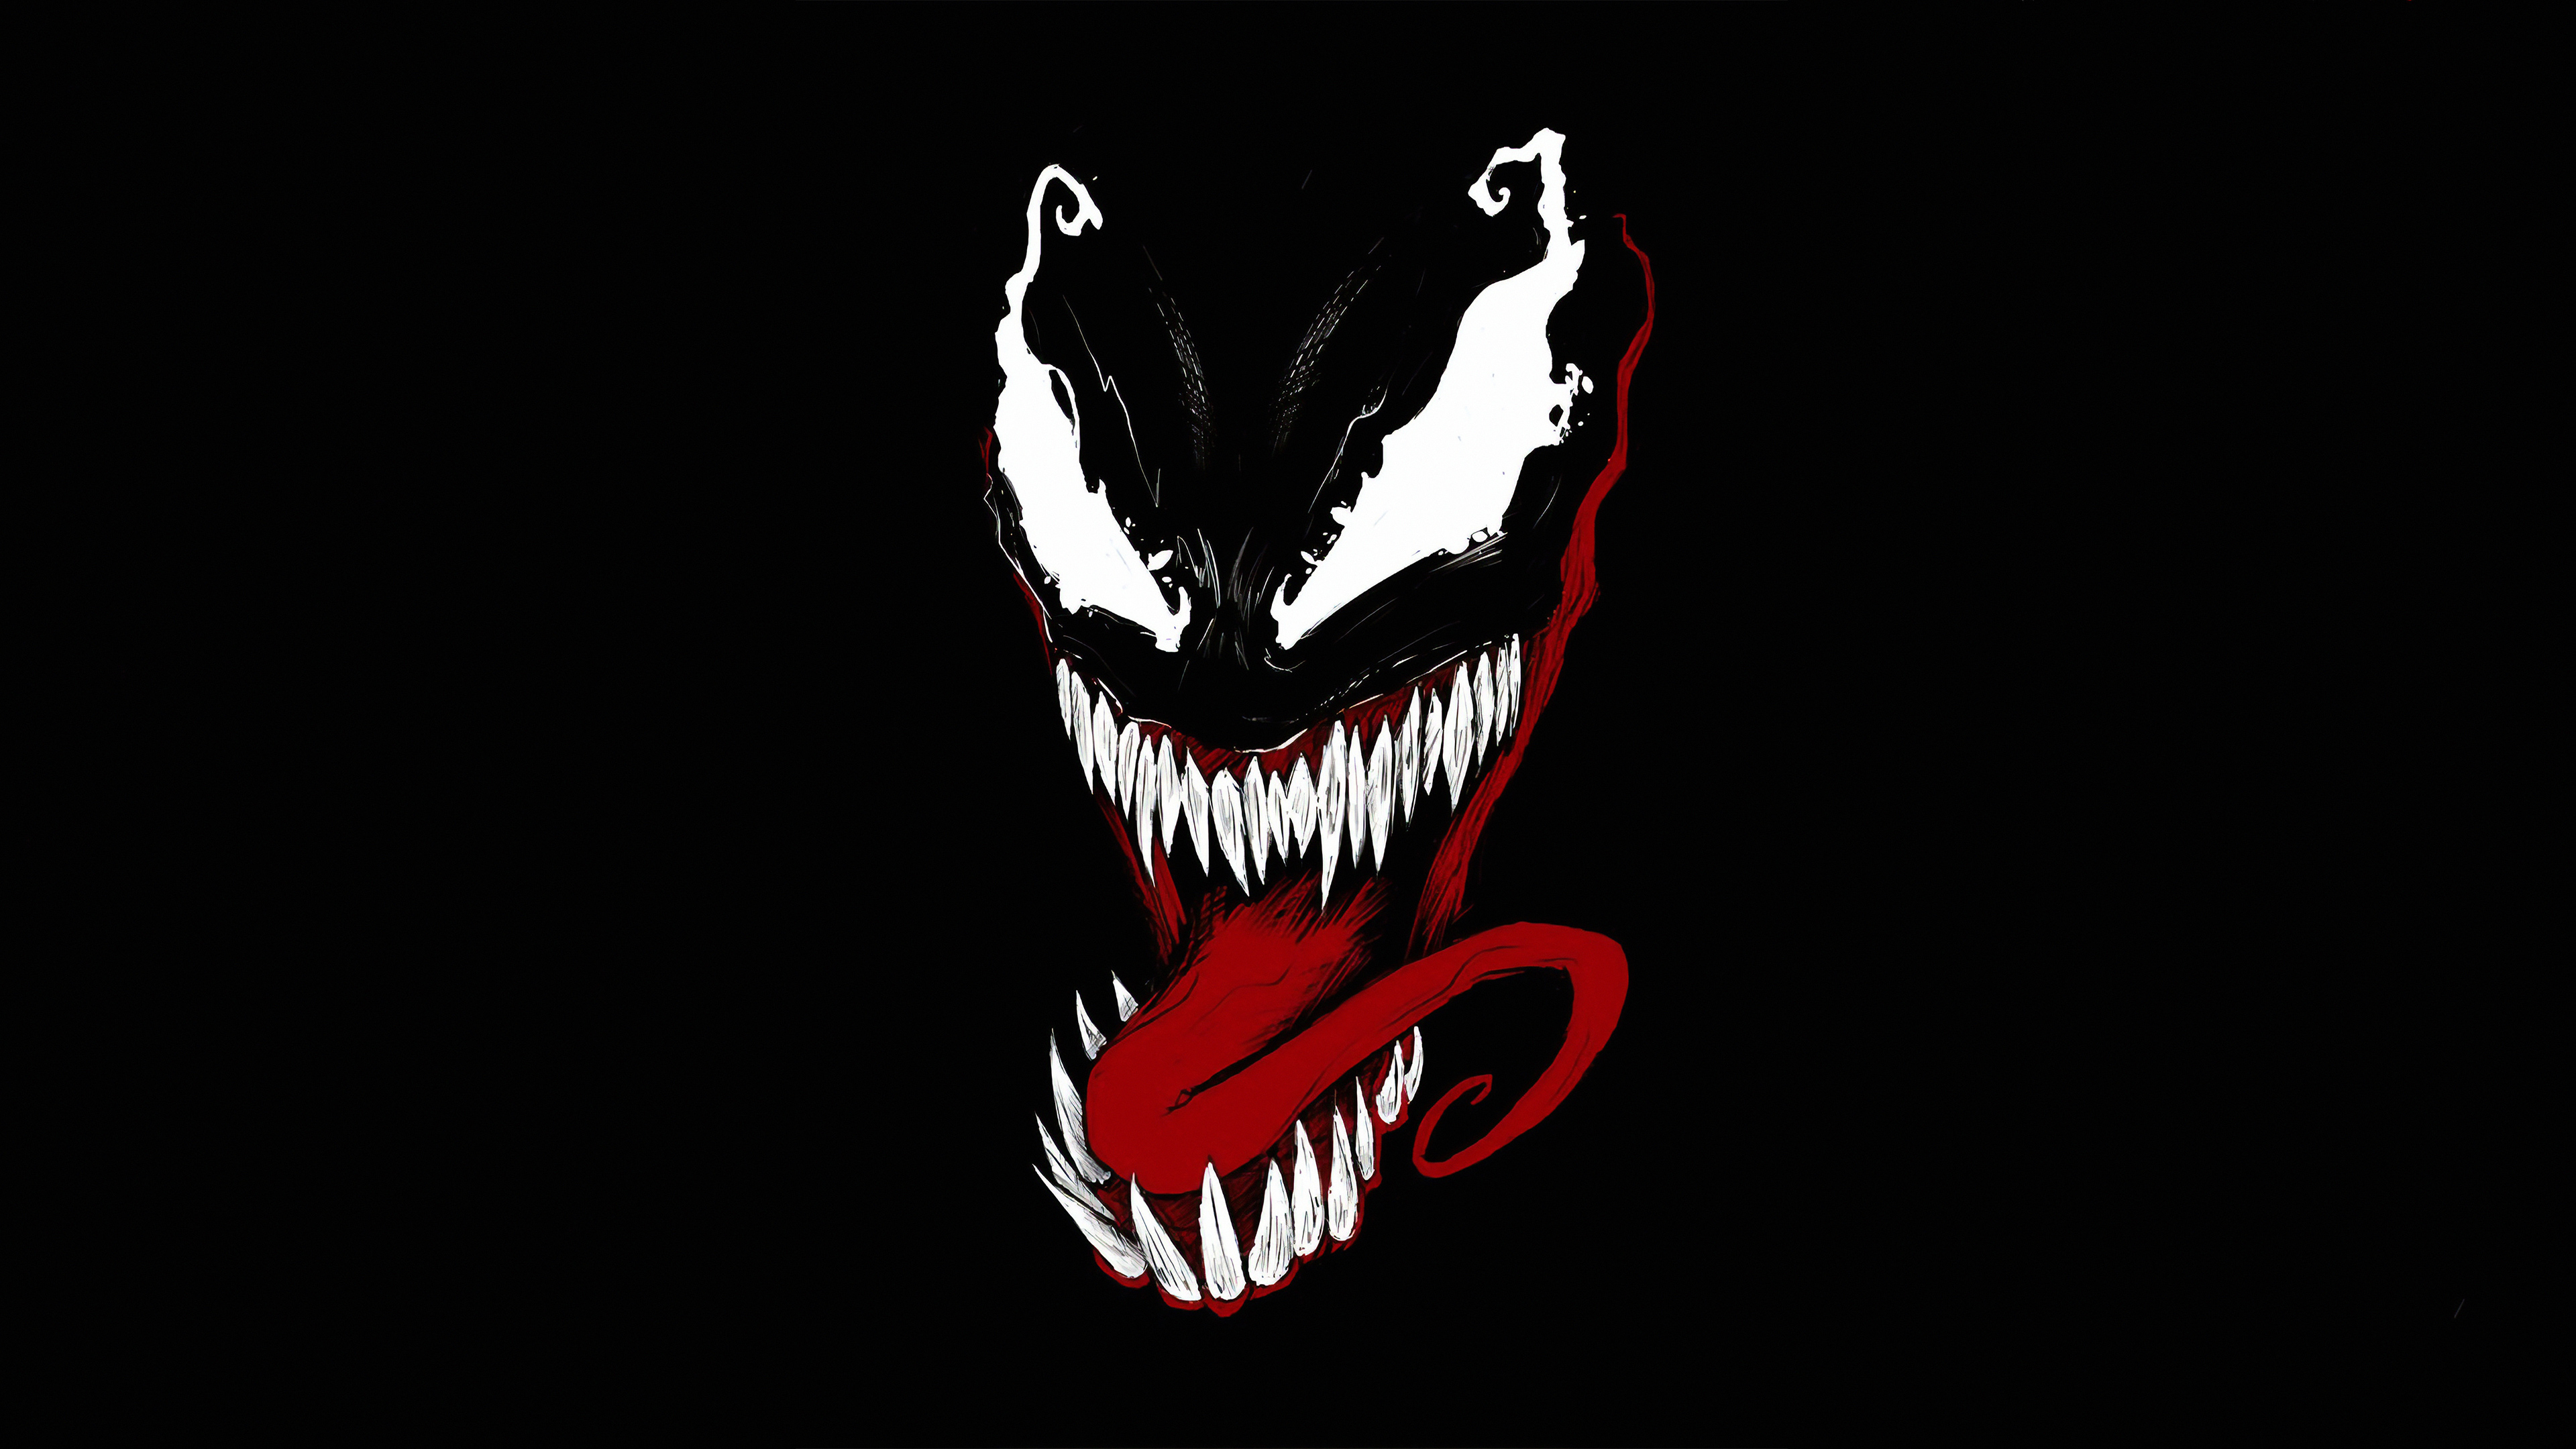 Wallpaper 4k Venom Devil 4k Wallpapers Artwork Wallpapers